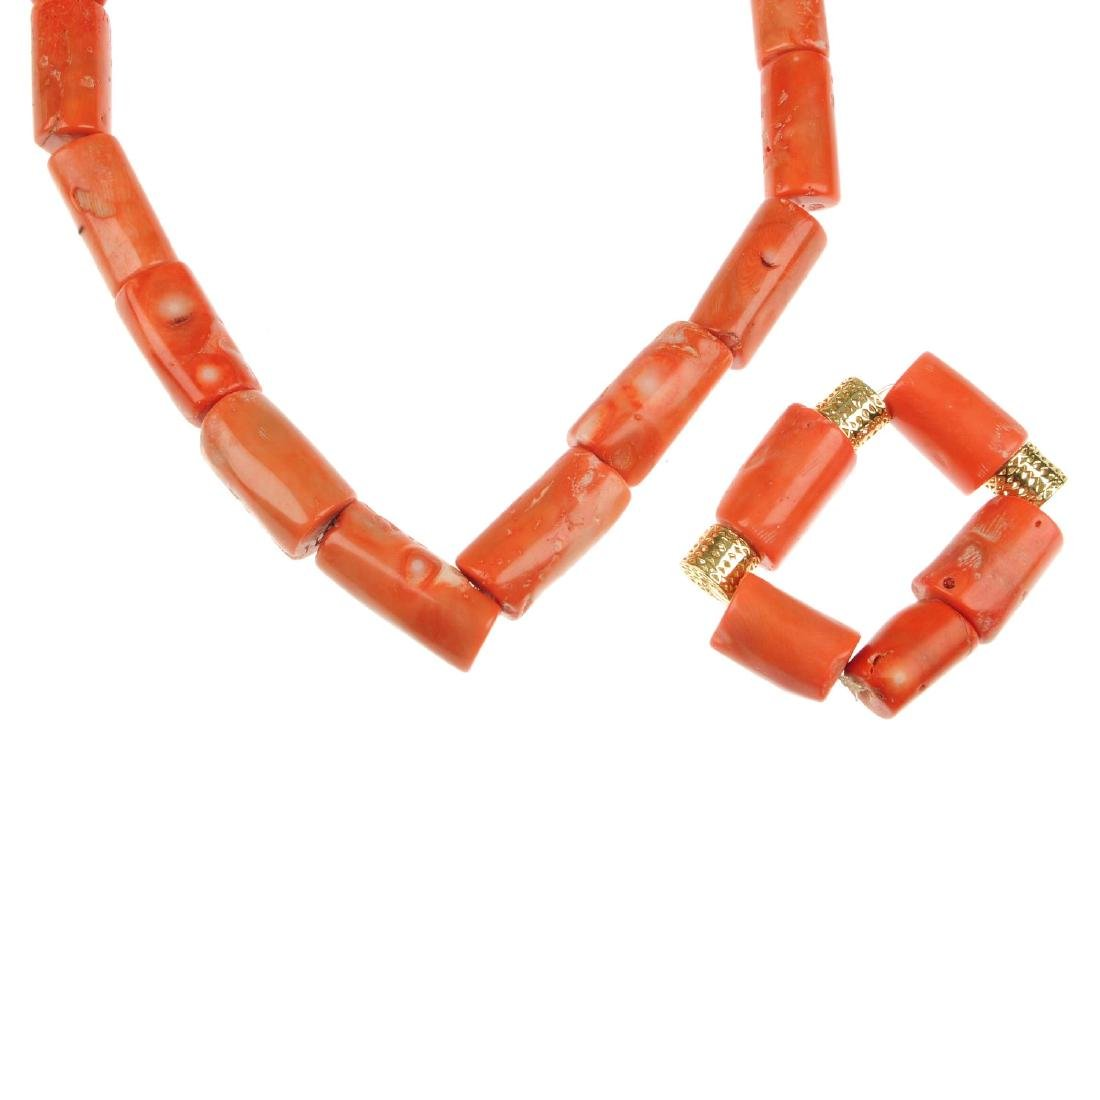 A coral necklace and bracelet. The necklace comprising